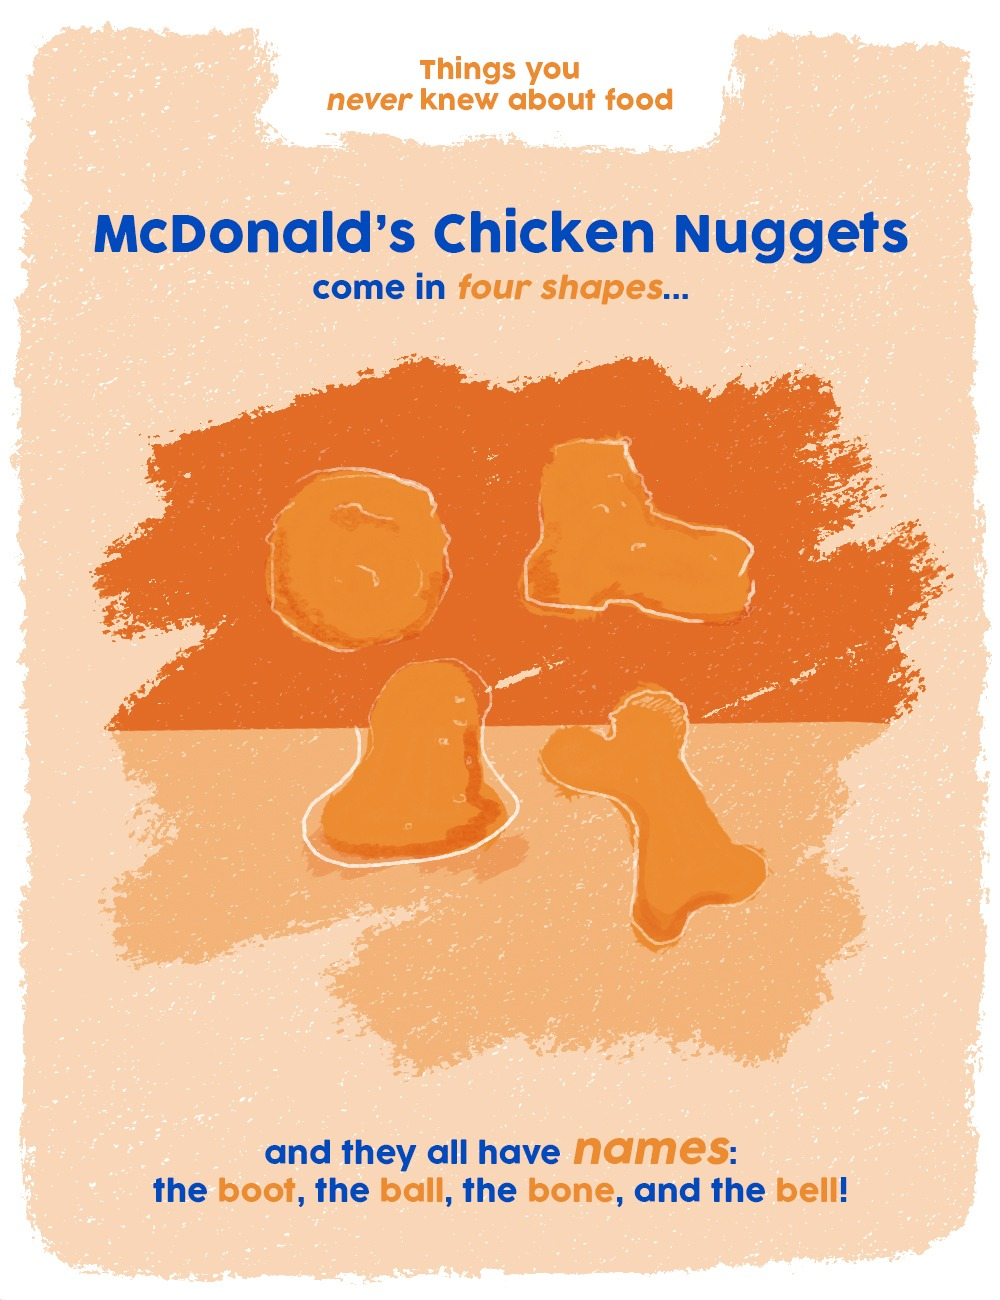 things you never knew about food graphics - chicken nuggets